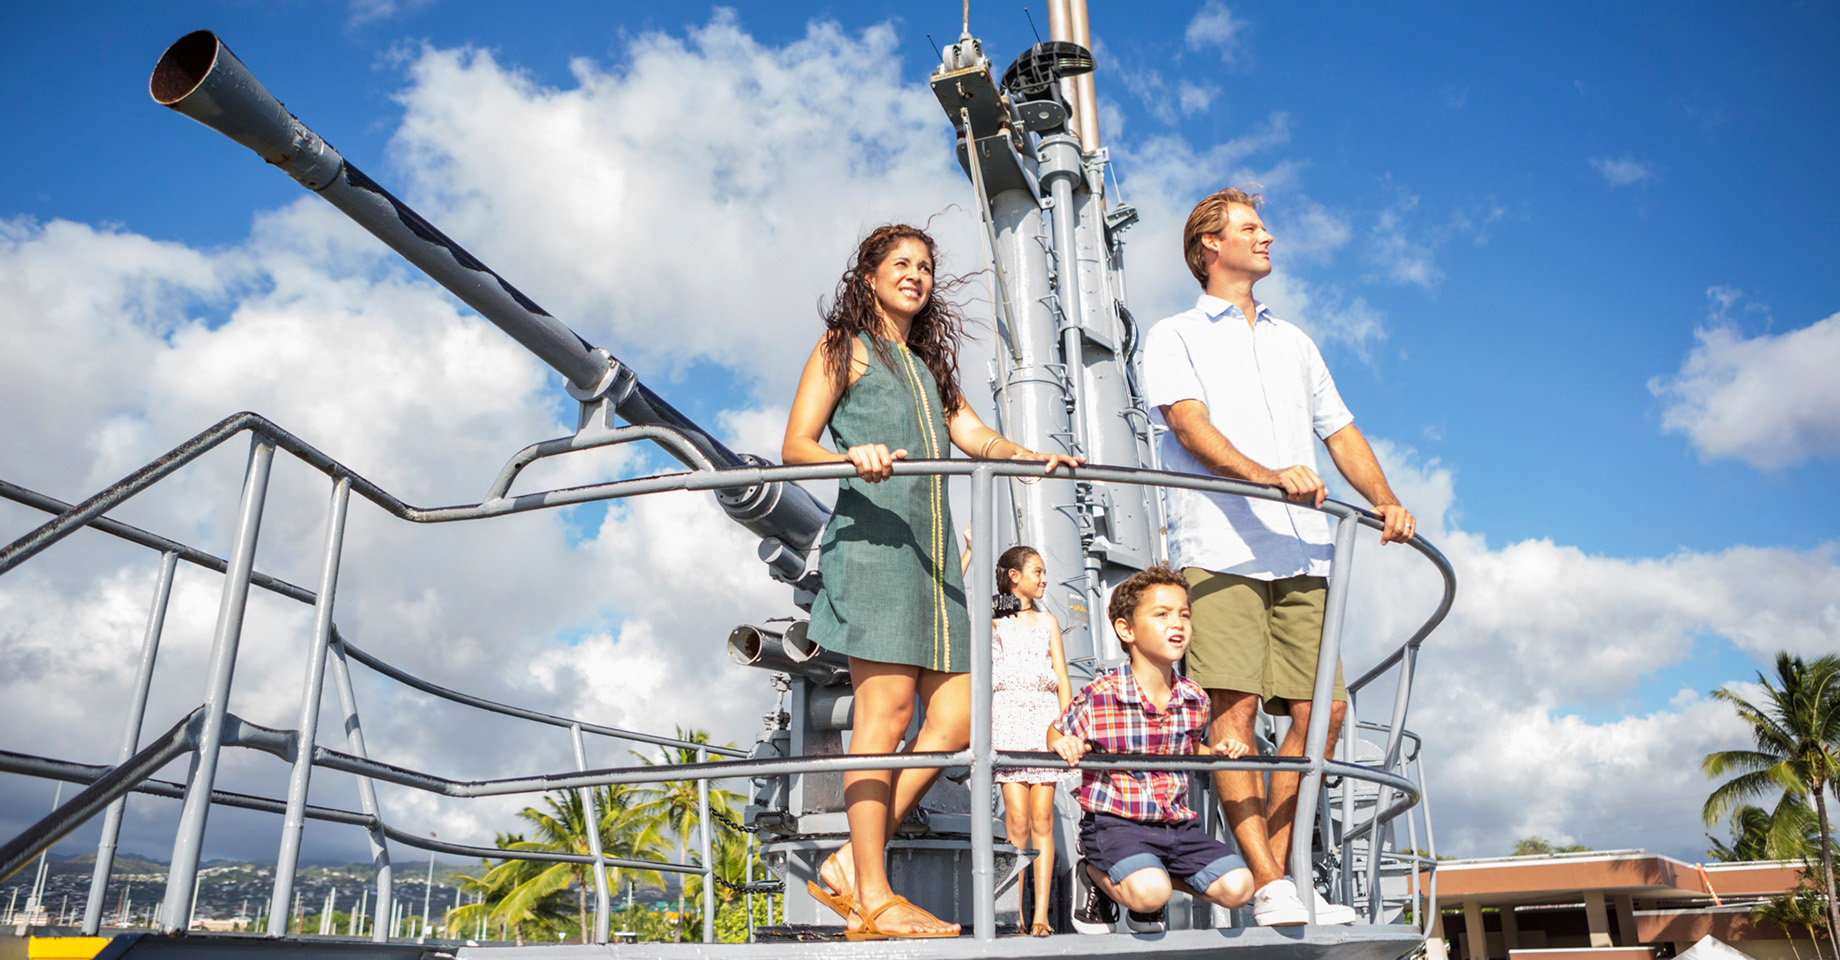 Family looks out from Bowfin deck gun